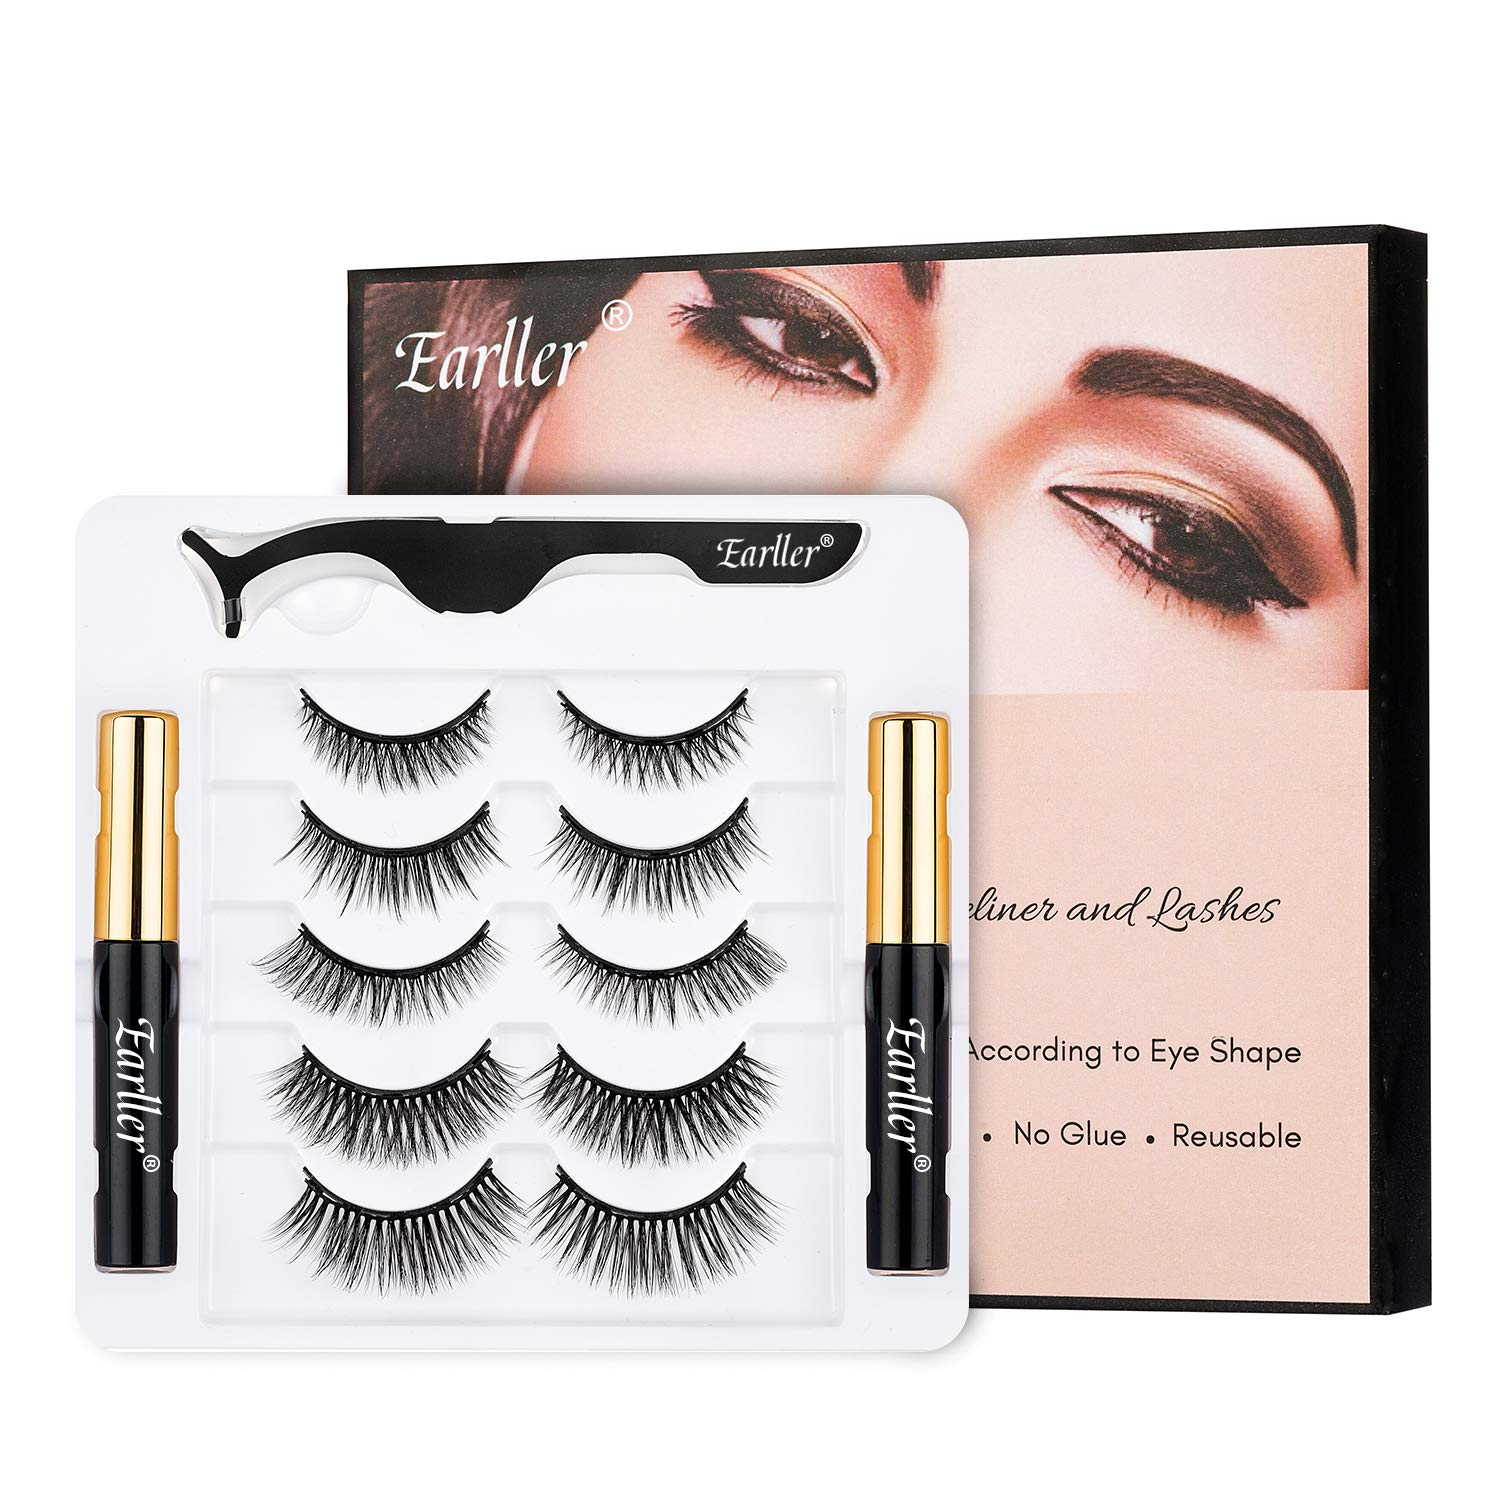 EARLLER Upgraded Magnetic Eyelashes with Eyeliner Kit, 5 Pairs Natural Look Full Eye Magnetic False Lashes With Applicator - Waterproof, Easy to Apply and No Glue Needed Eyelashes Set